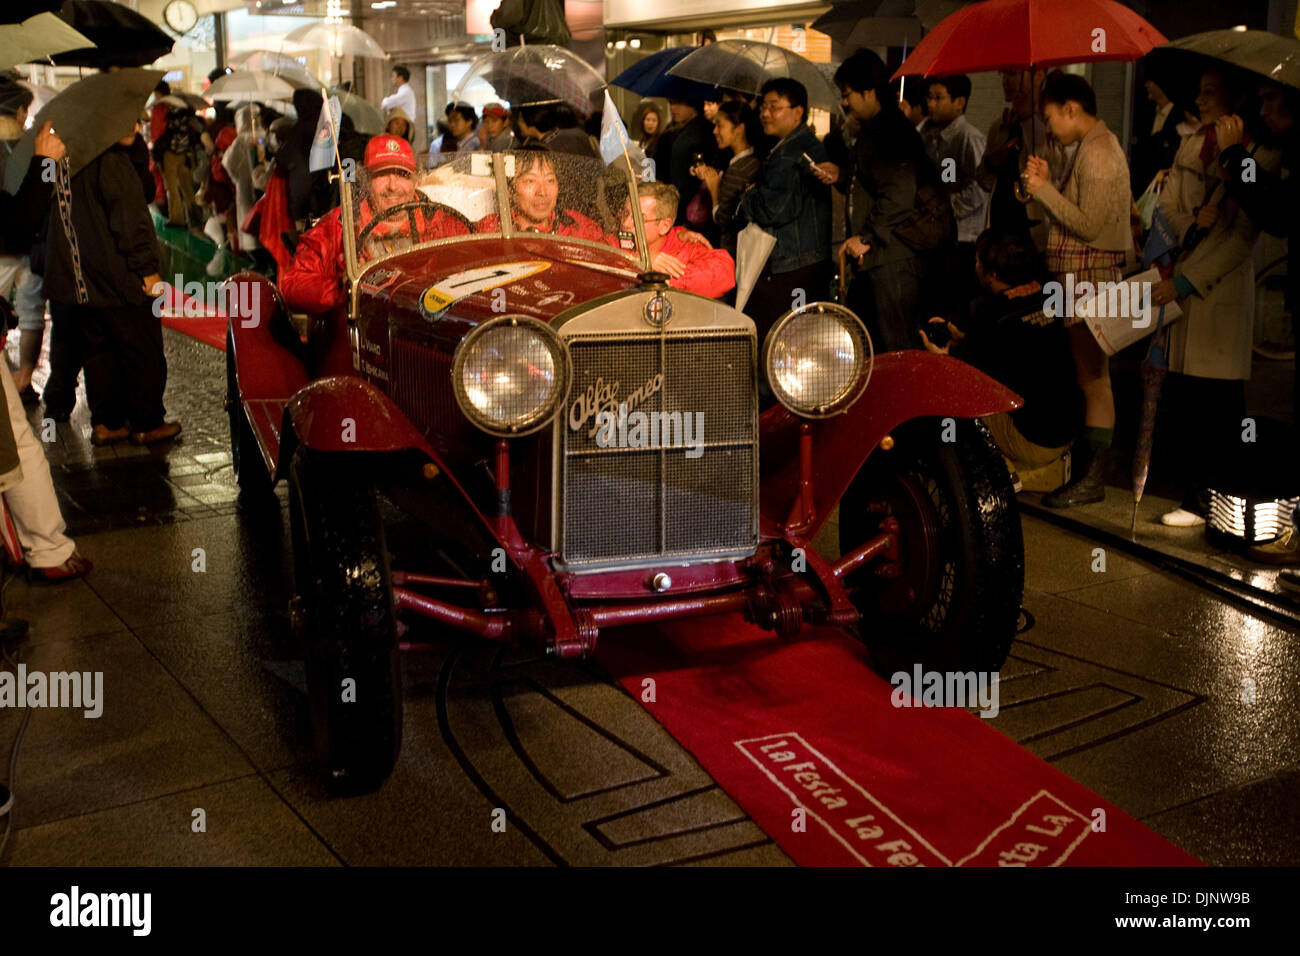 Oct 14, 2008 - Yokohama, Japan - The 12th annual La Festa Mille Miglia began on October 11th 2008 in the Harajuku district of Tokyo and finished on October 14 in the Motomachi district of Yokohama. The La Festa Mille Miglia is a 1000-mile classic car rally event that takes place every year in Japan with participants averaging the age of over 50. PICTURED: A foreign participant of t - Stock Image